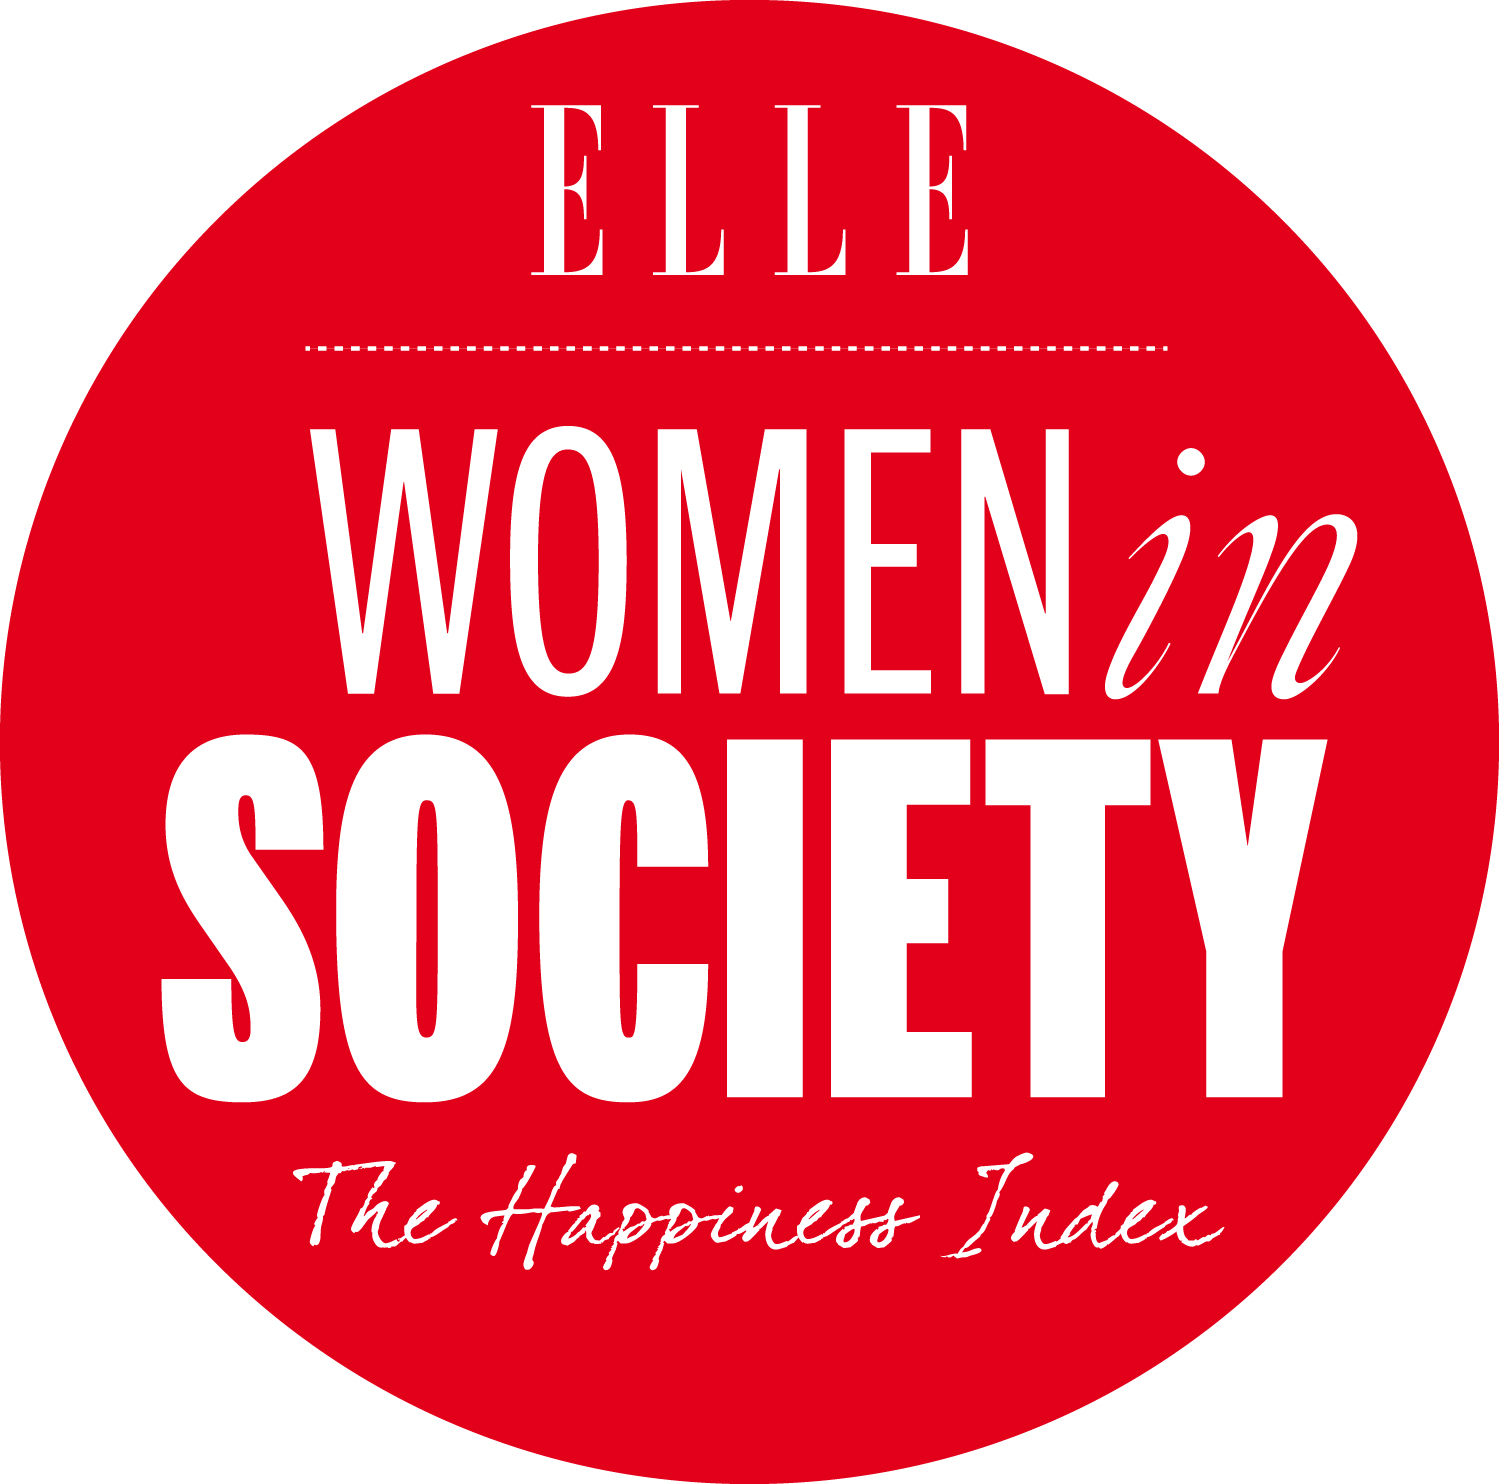 Women in Society: The Happiness Index in Canada | ELLE Women In ...